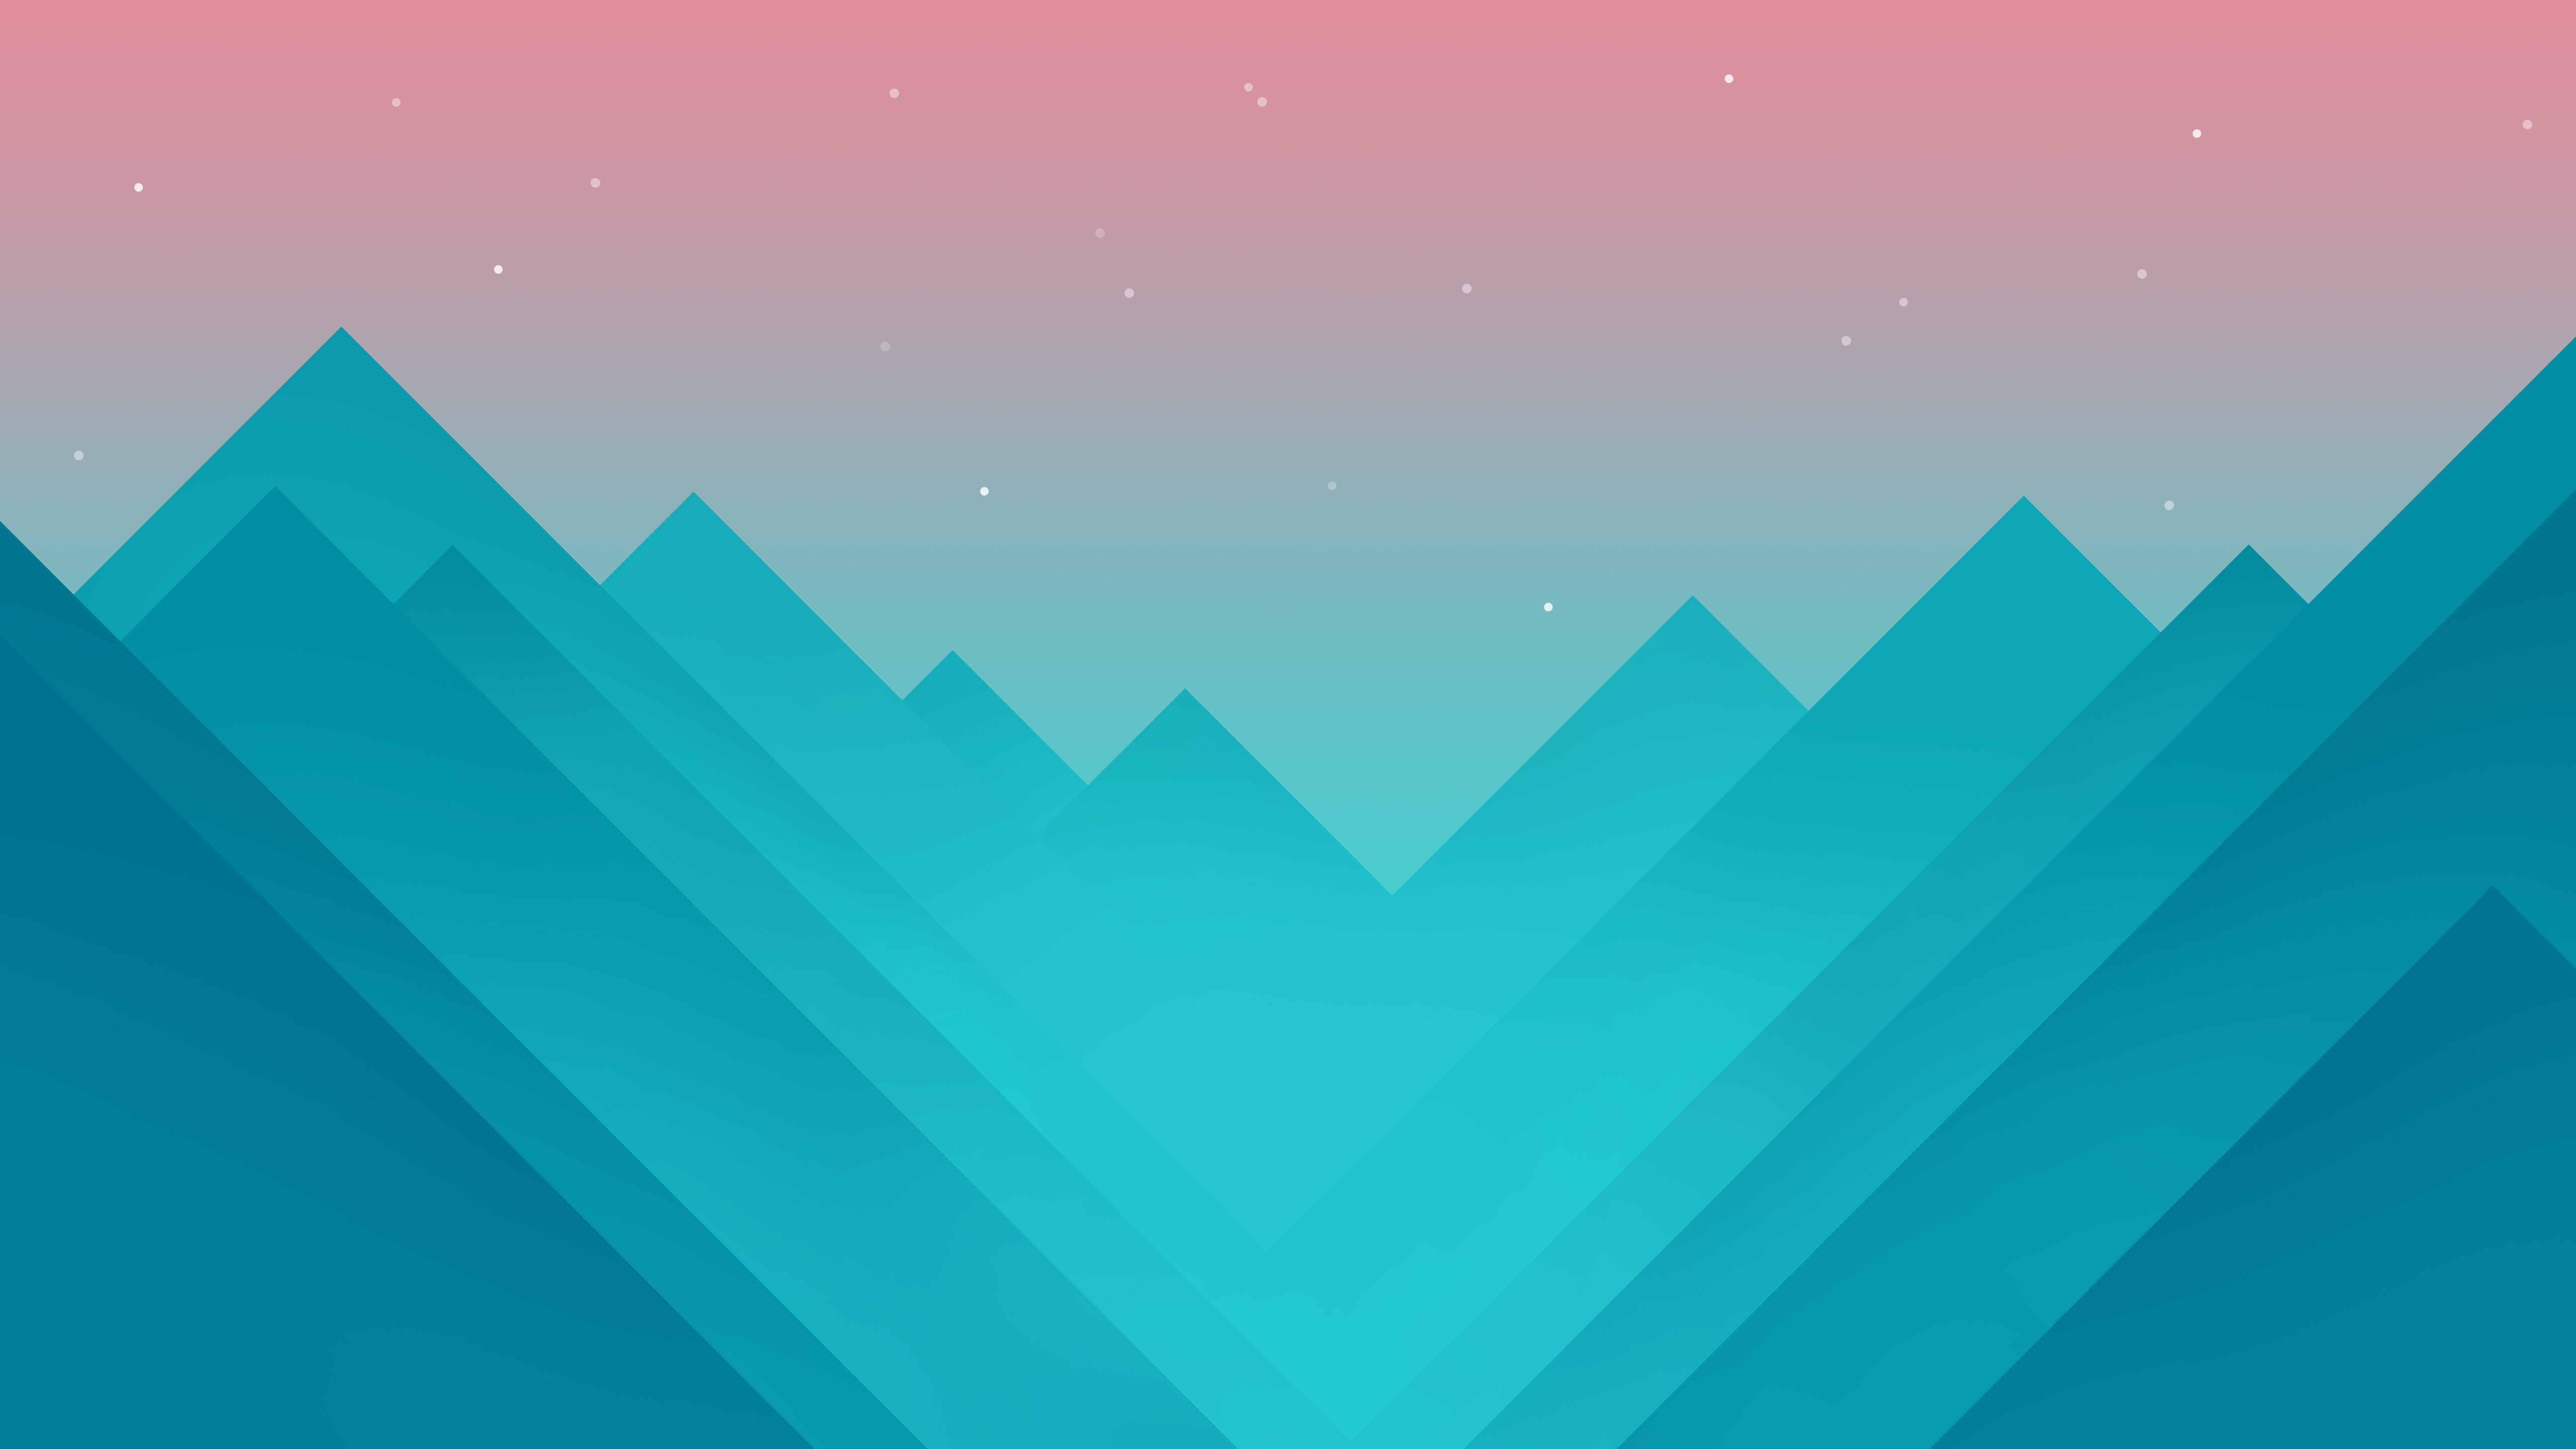 Dave Lee Wallpapers Posted By Samantha Thompson